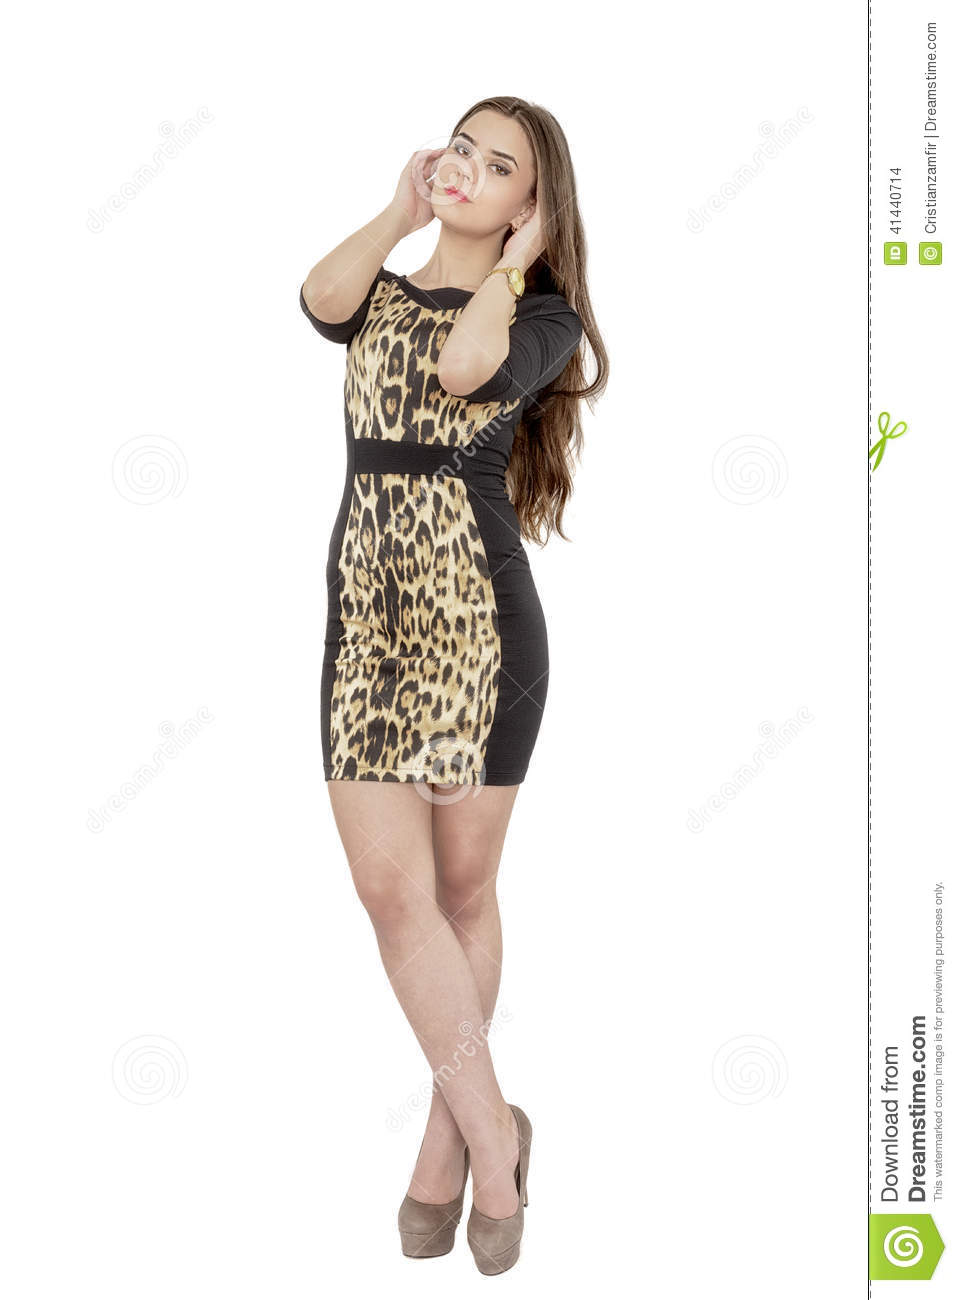 Full length portrait of a smiling fashionable woman